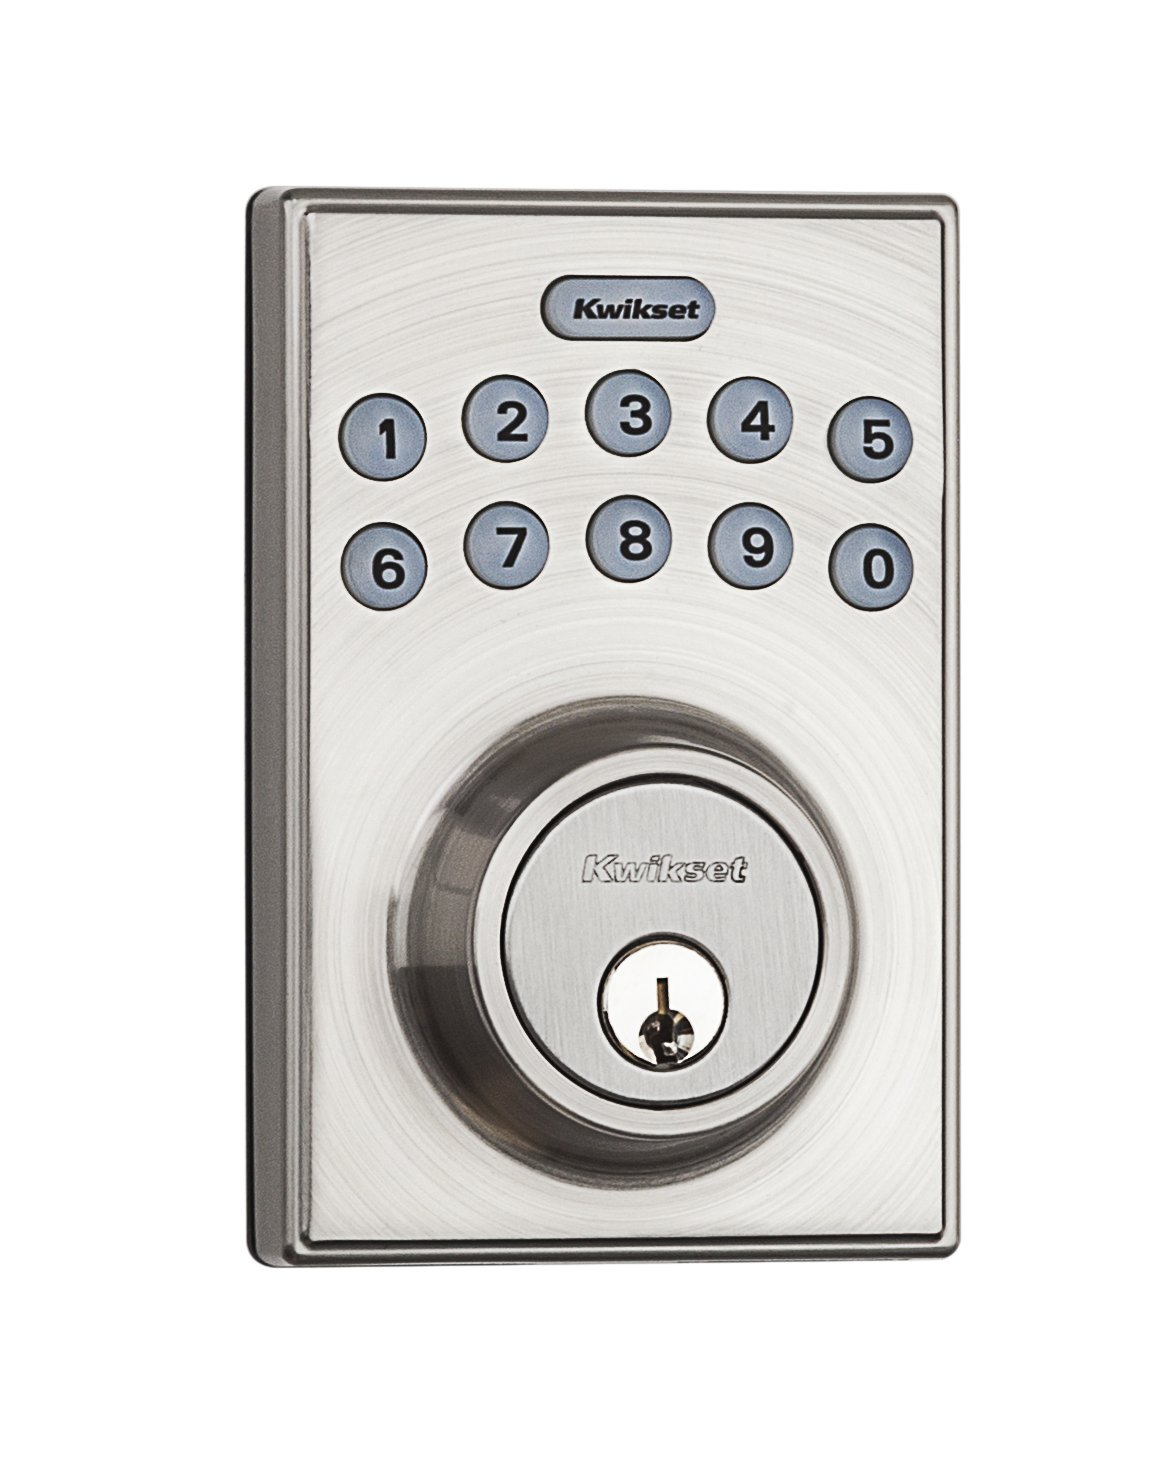 Kwikset 92640-001 Contemporary Electronic Keypad Single Cylinder Deadbolt